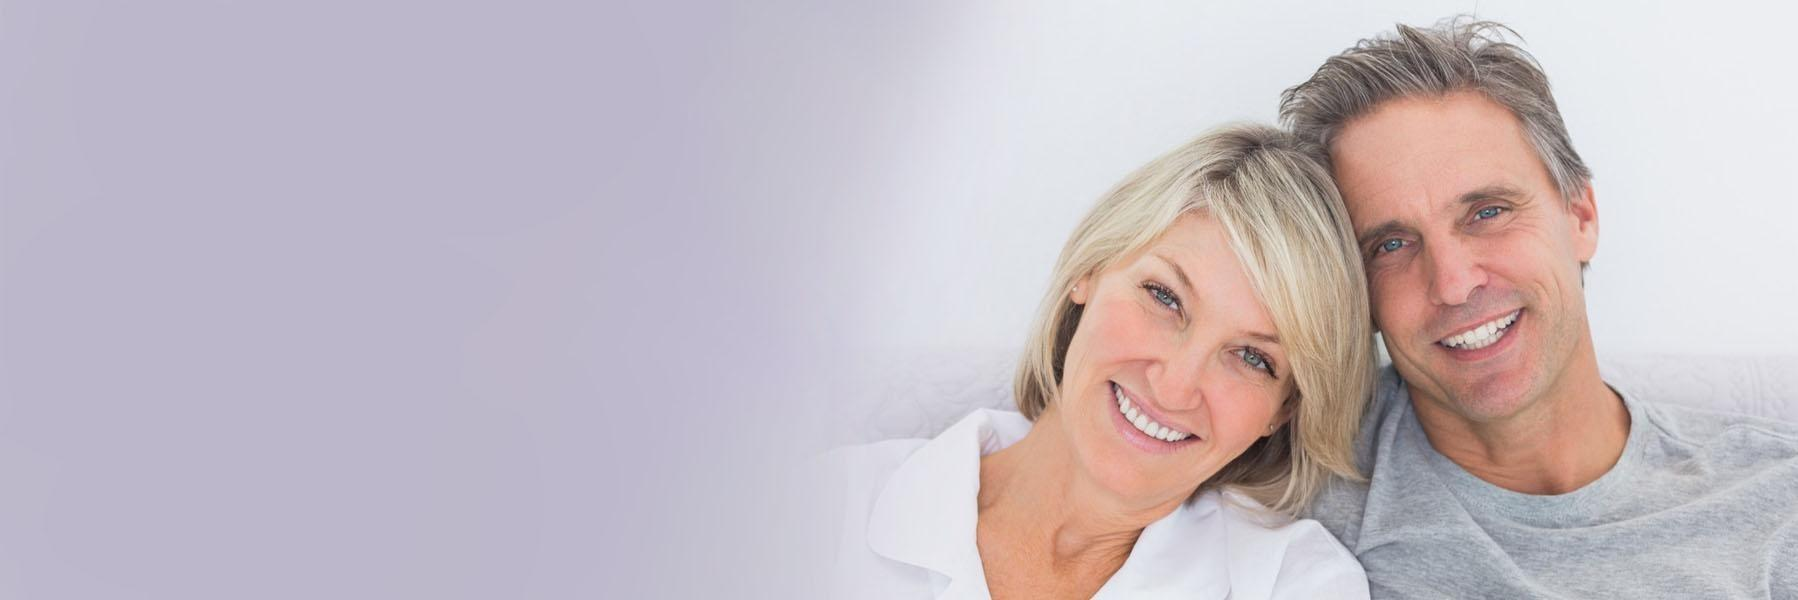 Couple | Dental Implants in Darebin